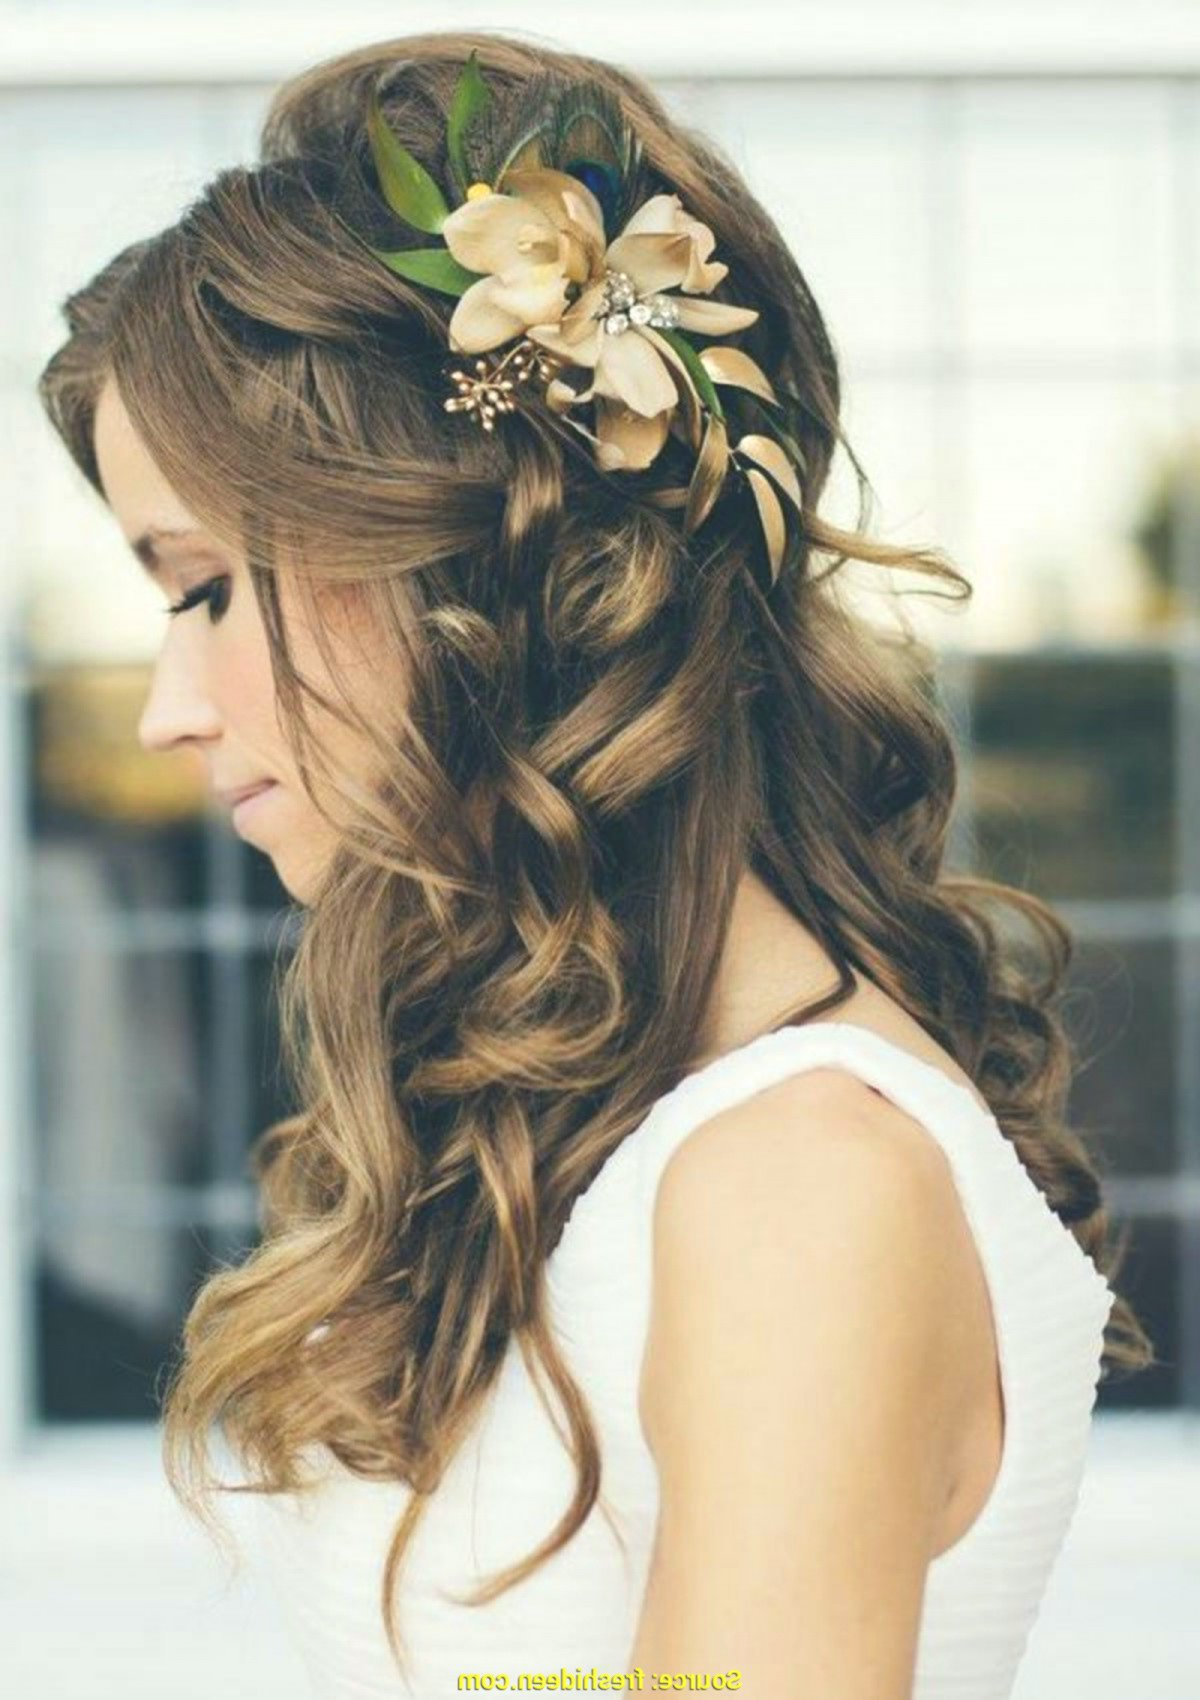 Fascinating open hair hairstyles décor-Fascinating open hair hairstyles decor